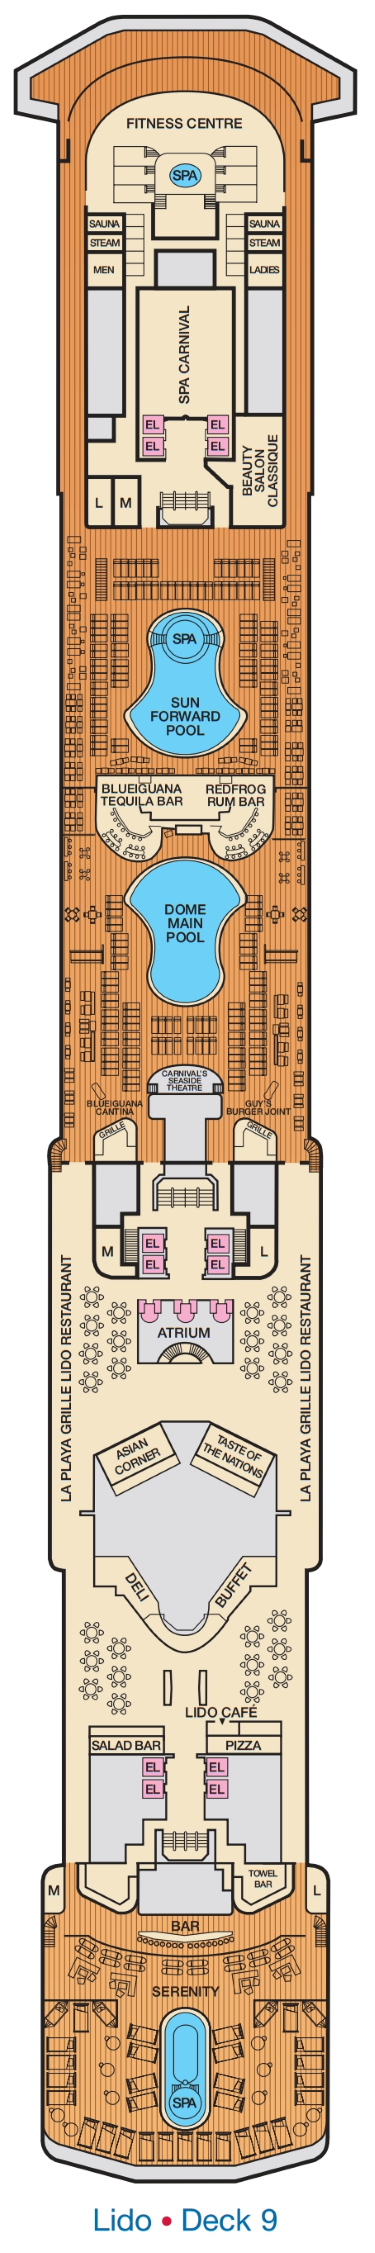 Carnival Spirit Lido Deck 9 layout